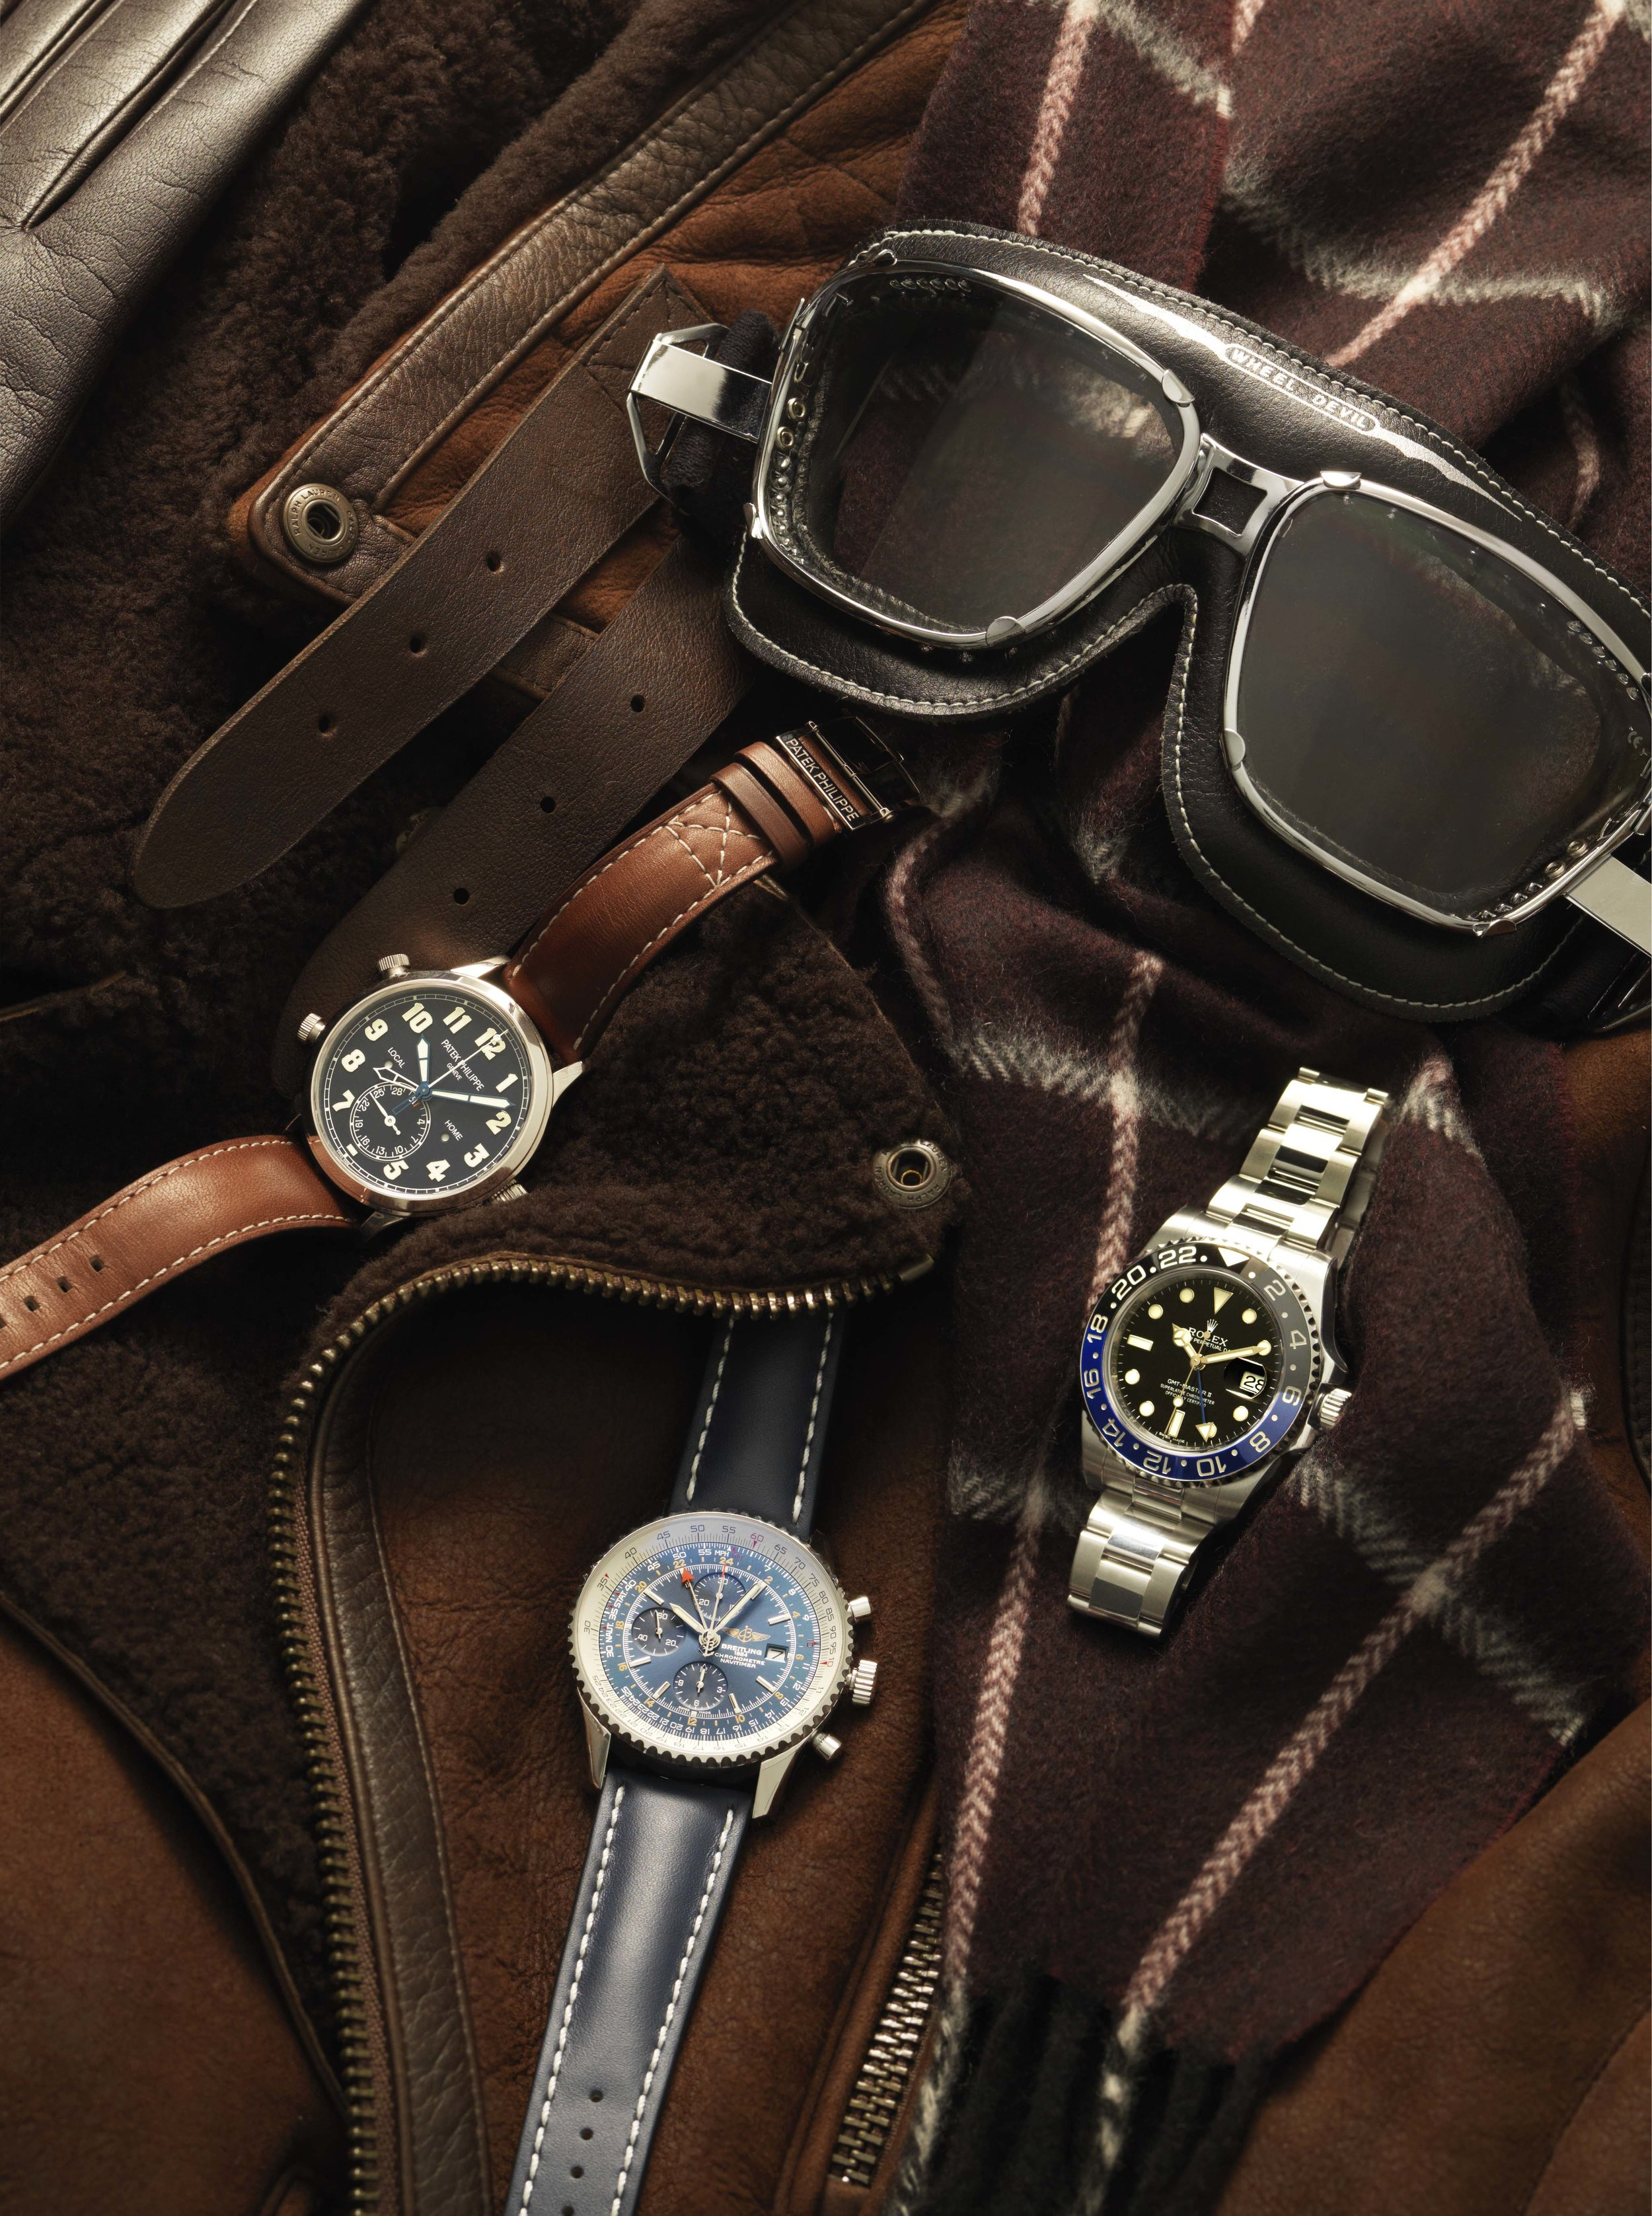 DH&Co-Photography-Still-Life-GJ Autumn Watches2 MASTER.jpg